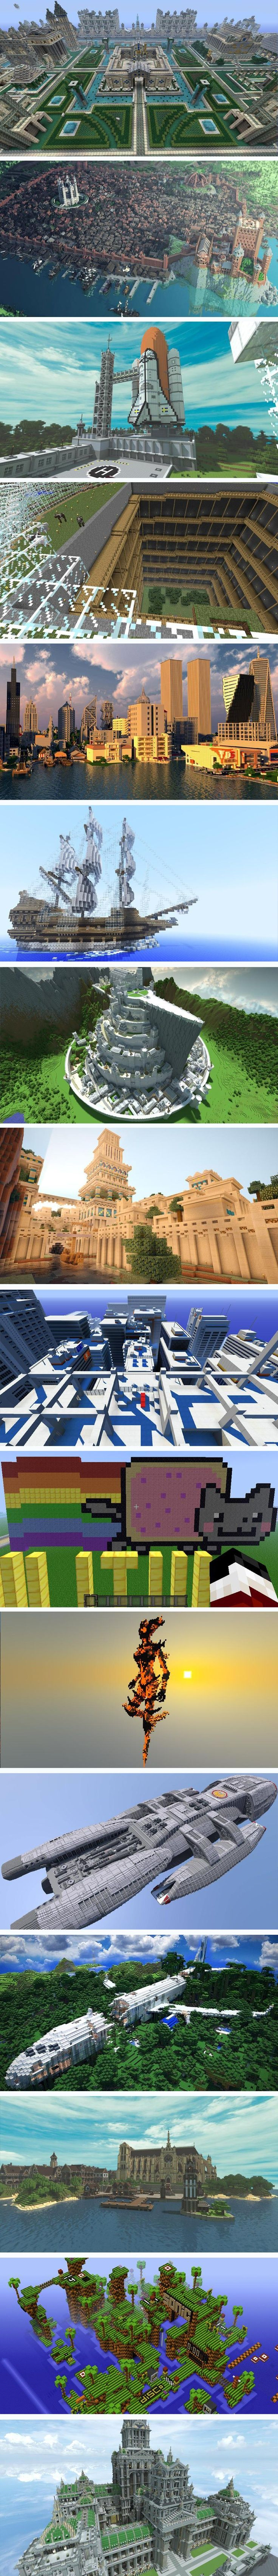 Npc village buildings by coltcoyote on deviantart apps directories - Amazing Minecraft Designs This Is What Happens When Your Kids